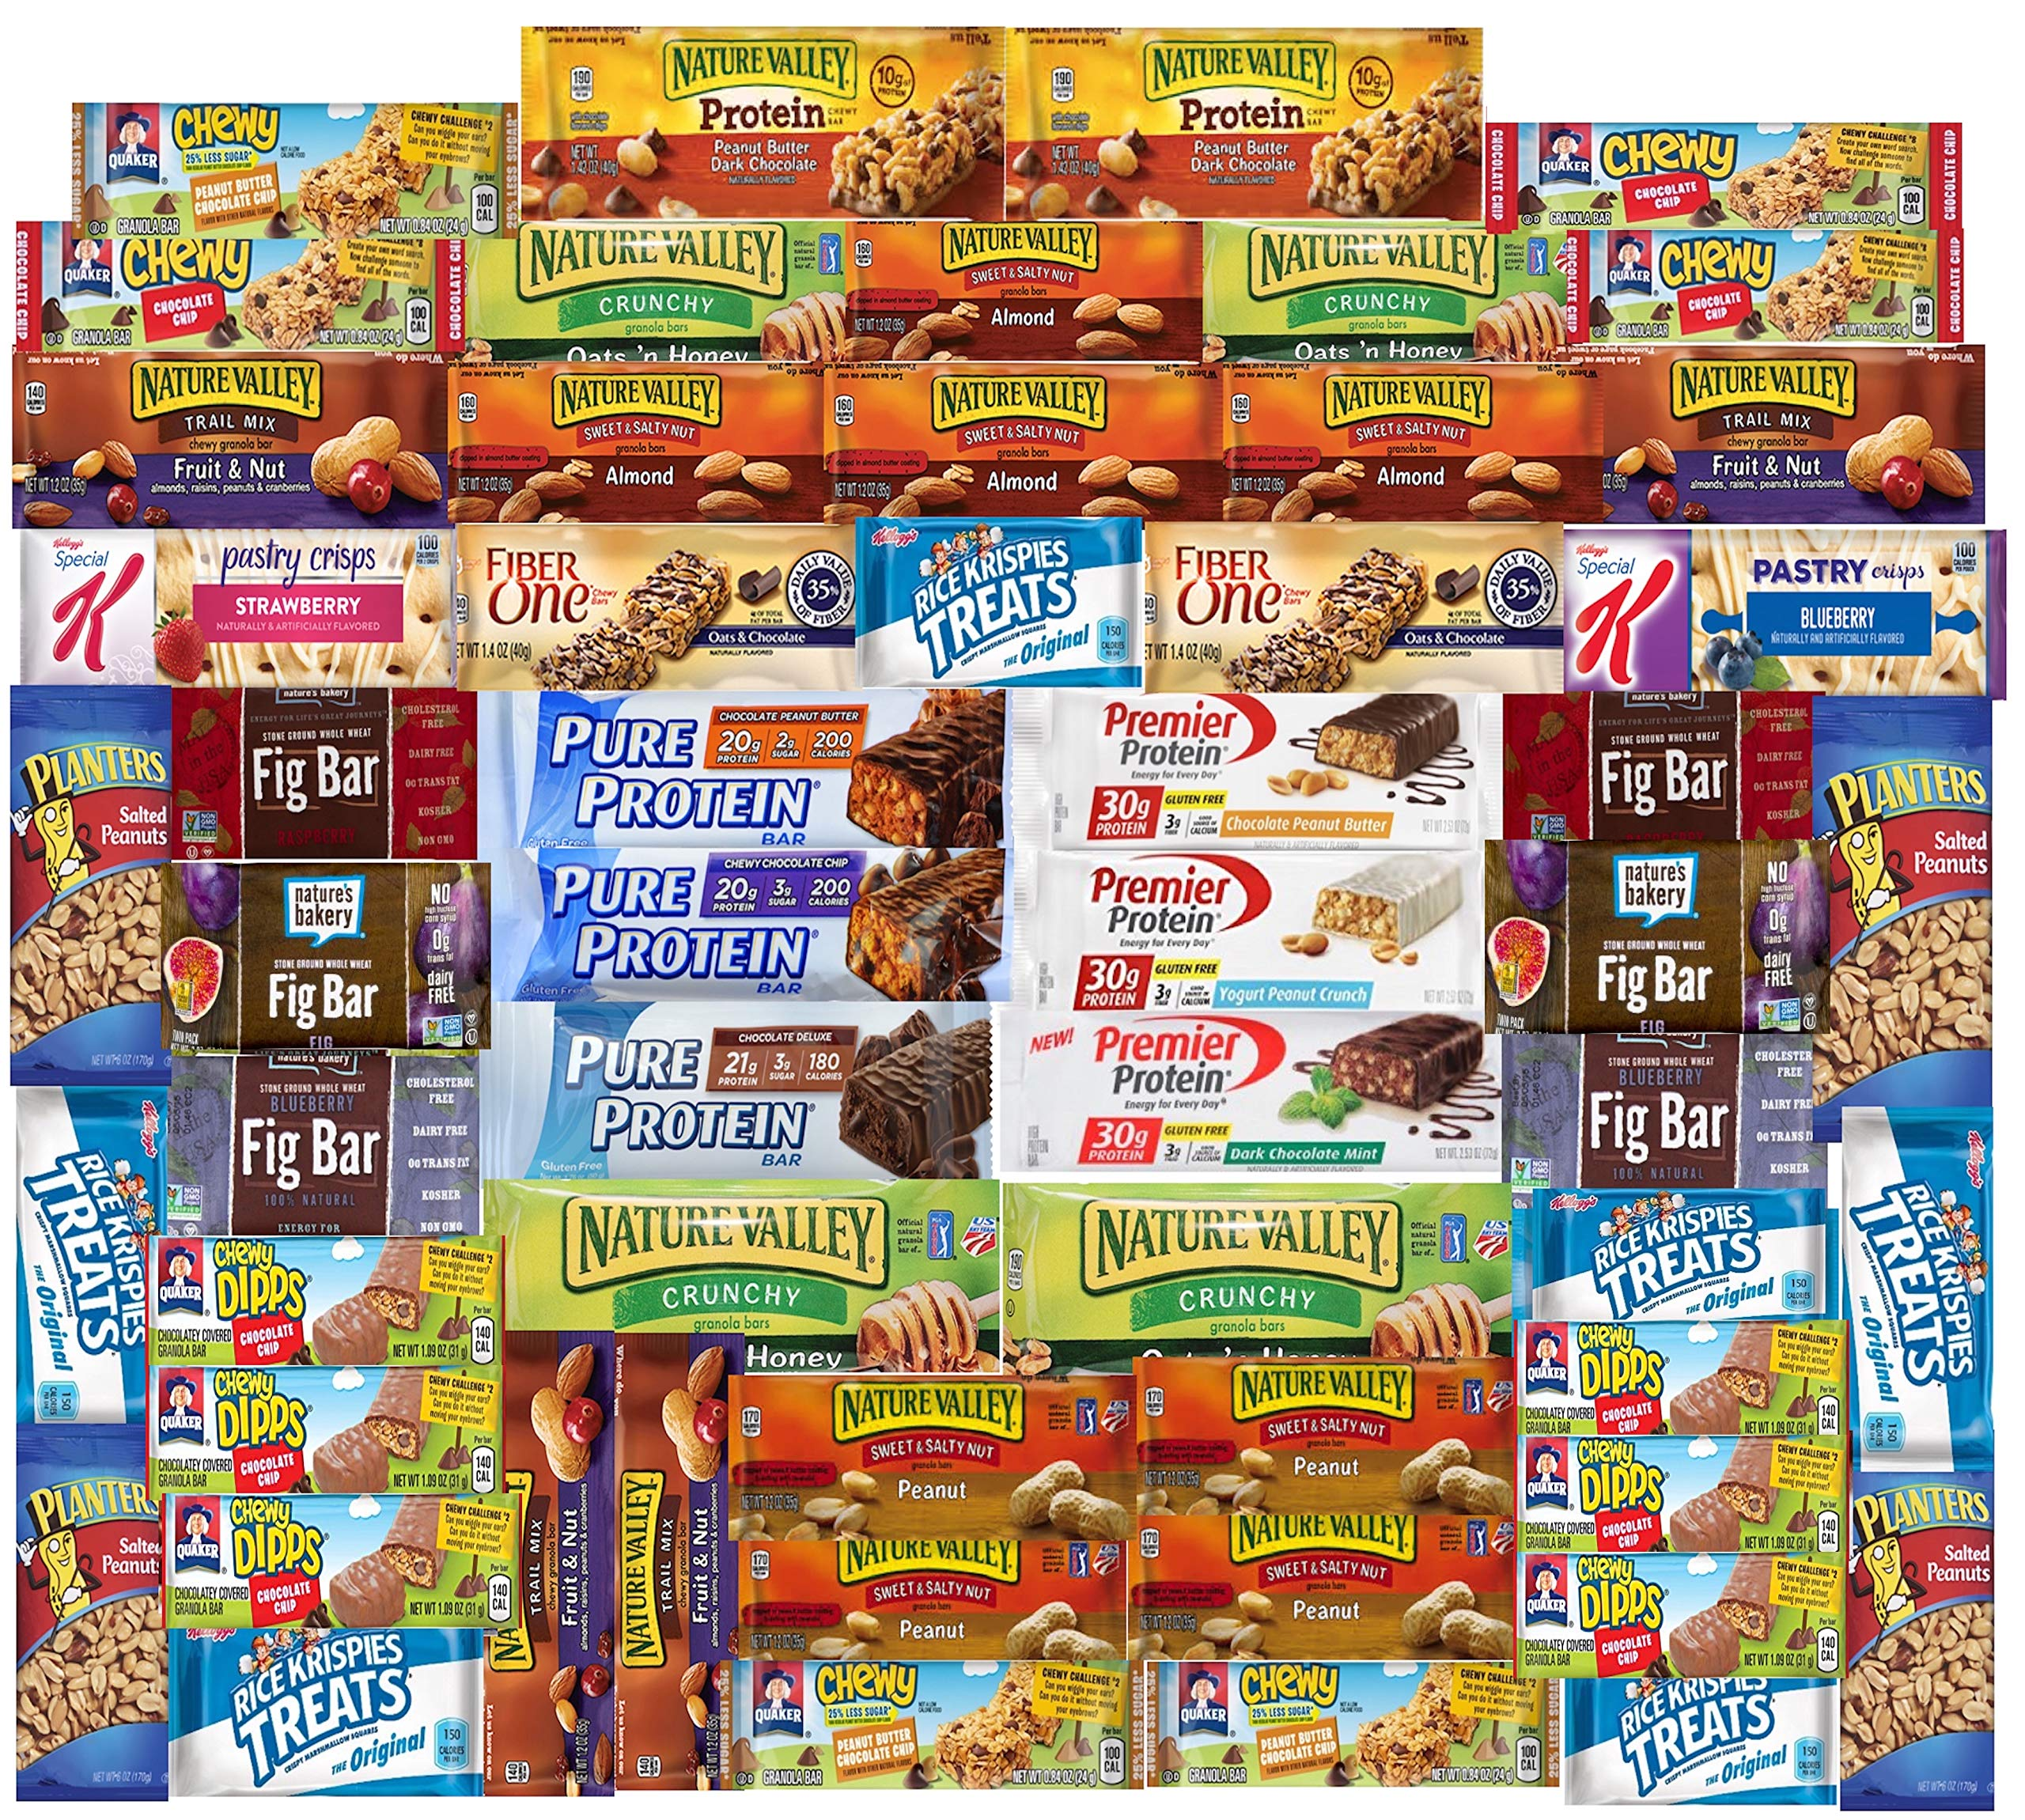 Ultimate Healthy Fitness Box - Protein & Healthy Granola Bars Sampler Snack Box (56 Count) - Care Package - Gift Pack - Variety of Fitness, Energy Bars and Premier Protein Bars. by LA Signature